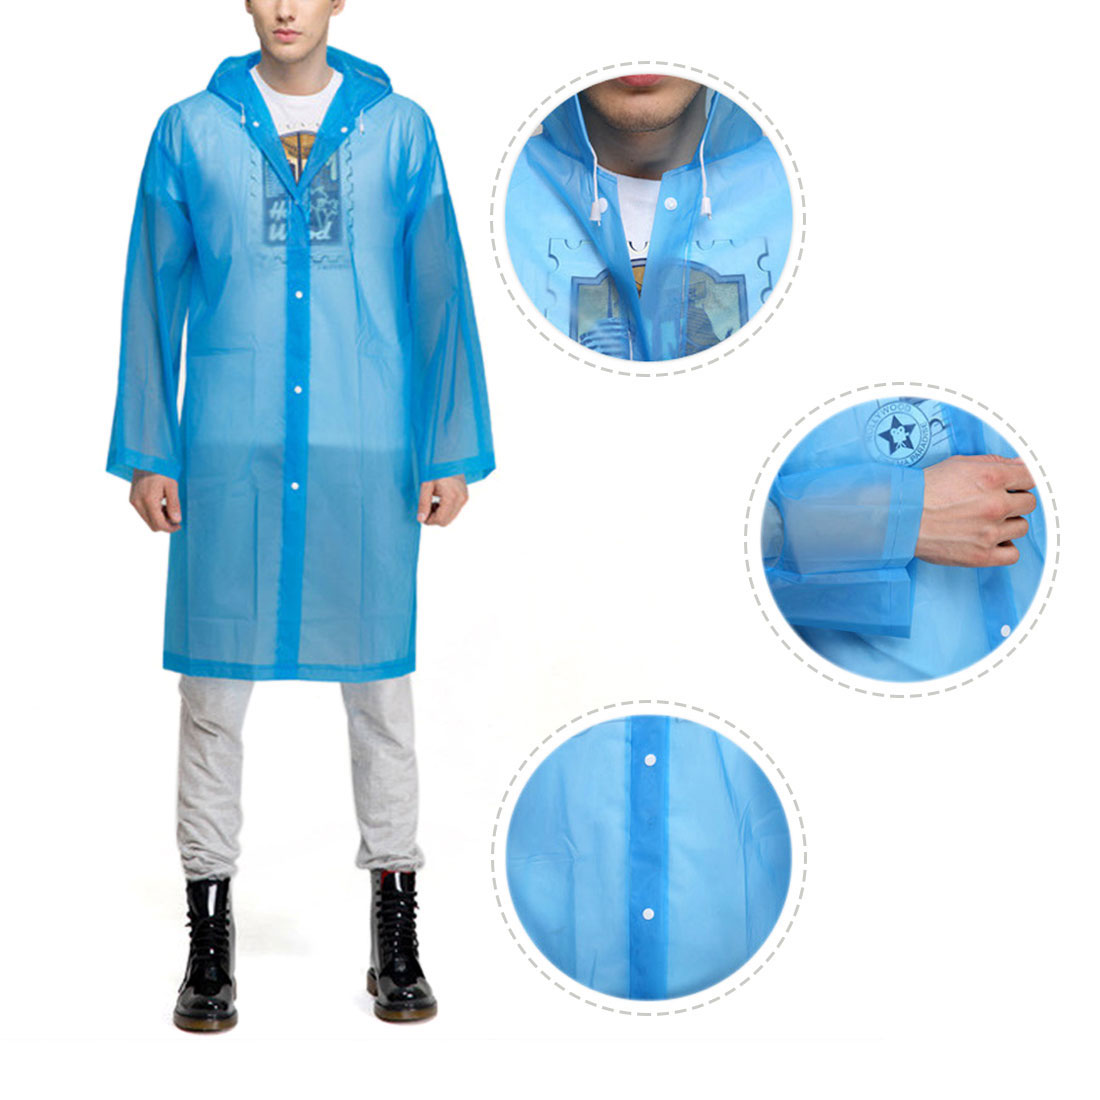 M Blue Portable EVA Waterproof Adult Raincoat Hooded Rain Poncho for Bicycle